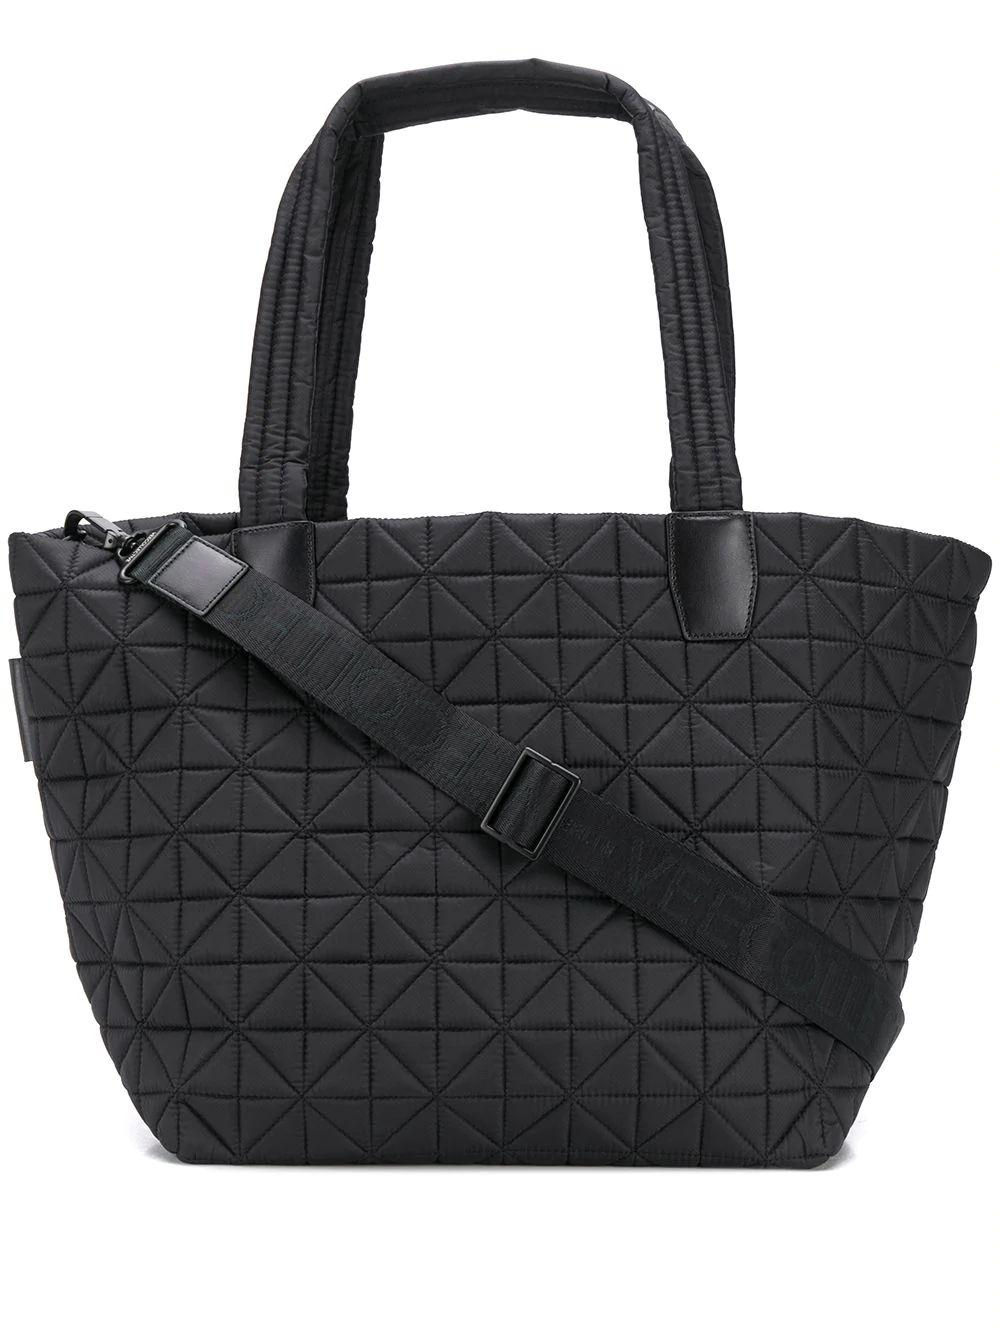 Medium Vee Tote